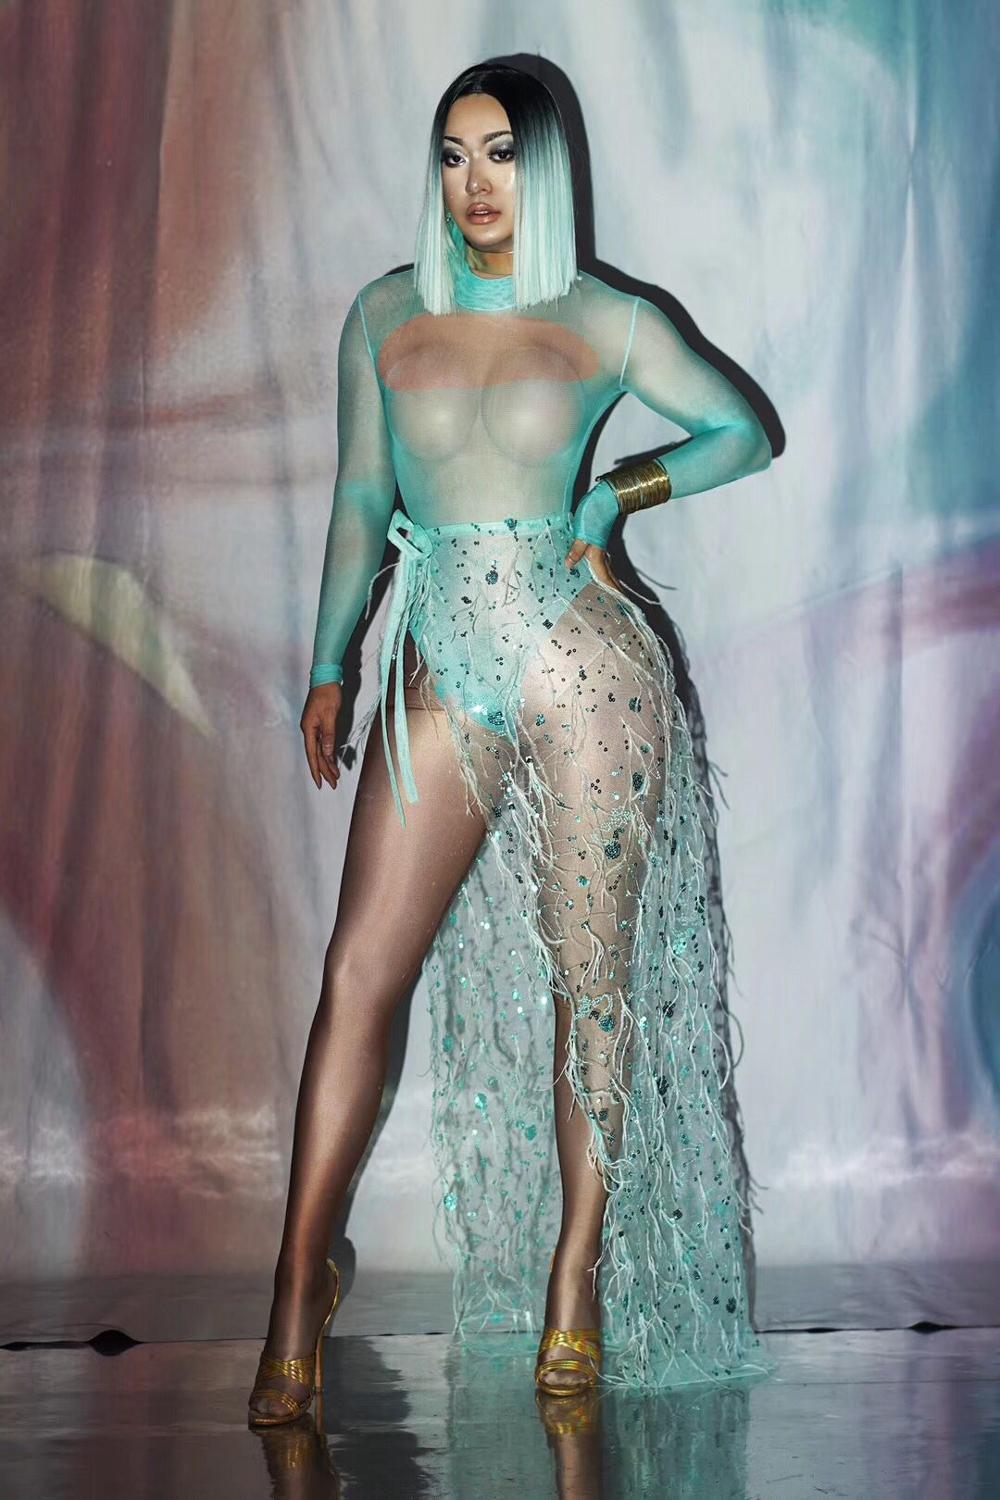 Green Sequins Mesh Feather Long skirt Bodysuit Outfit Bar Women Dance Prom Bodysuit Singer Show Wear Outfit Set